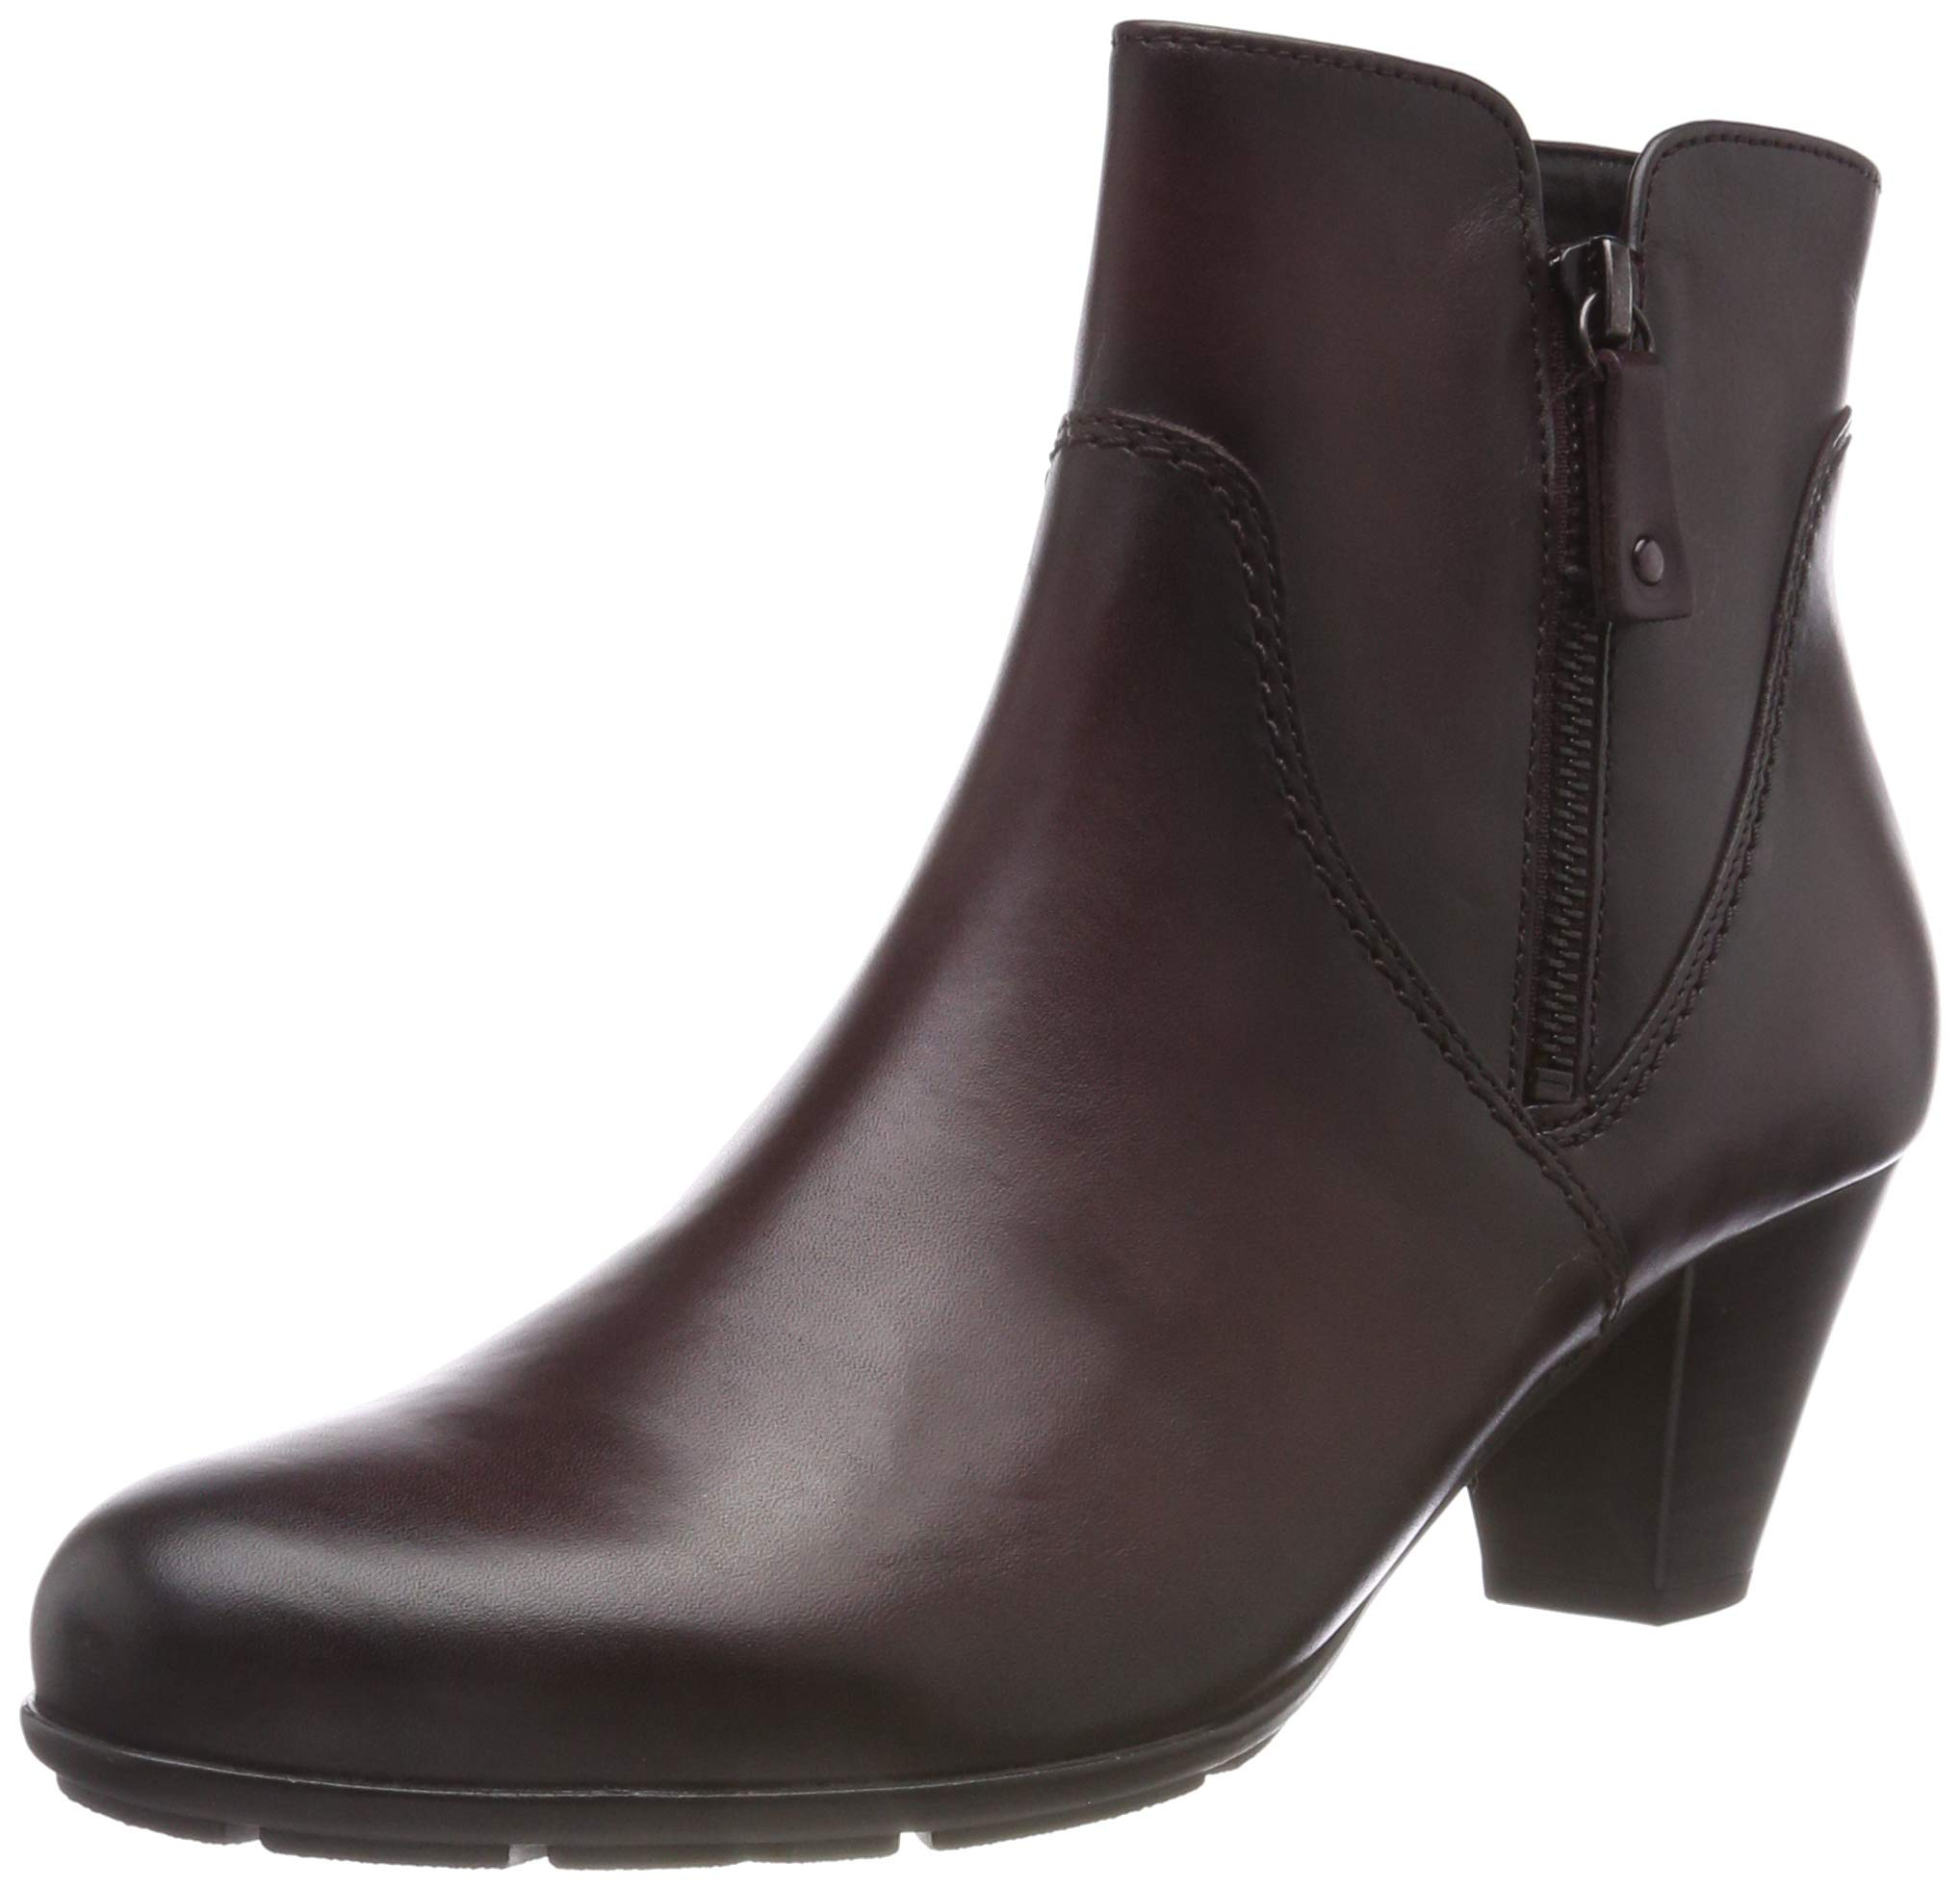 FemmeRougewineeffekt2539 Eu FemmeRougewineeffekt2539 Eu Shoes Gabor BasicBotines Shoes Shoes Gabor Gabor BasicBotines BasicBotines n08OkPw